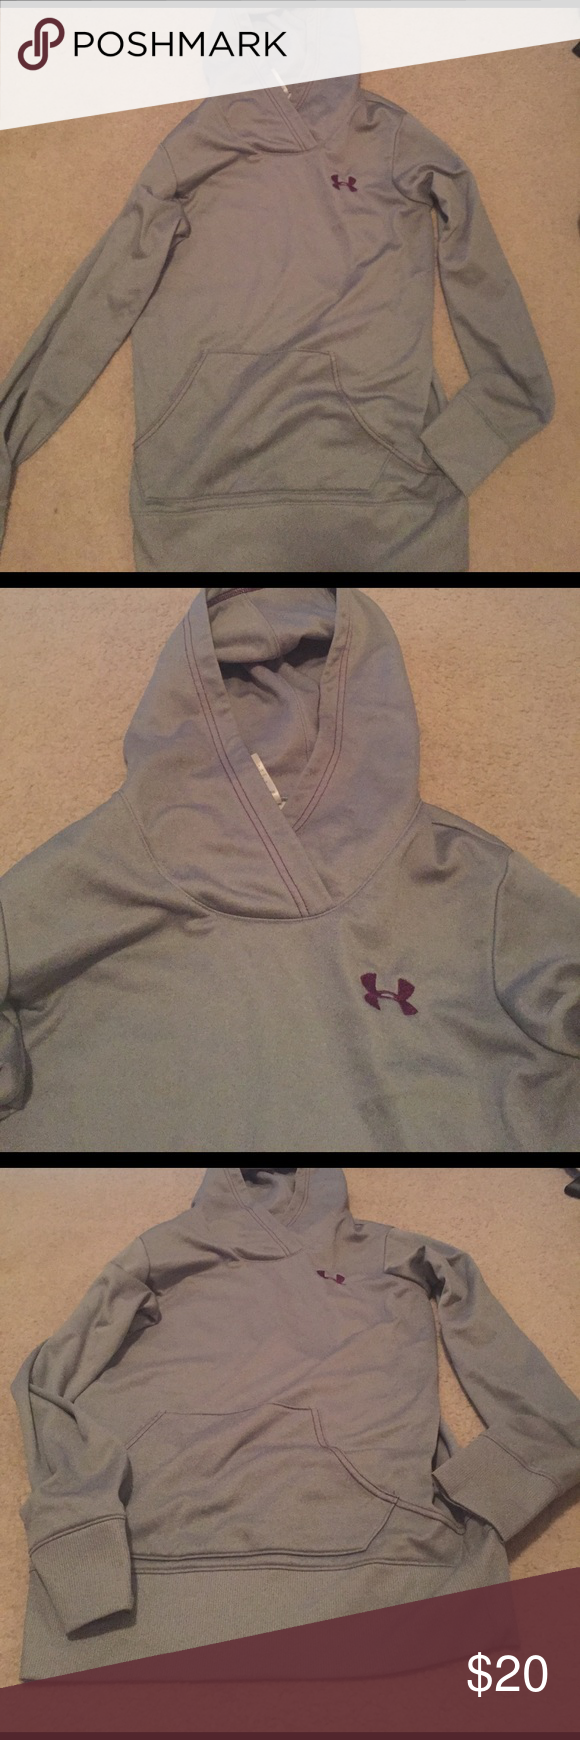 Grey under armour hoodie size small Grey under armour hoodie size small Under Armour Tops Sweatshirts & Hoodies